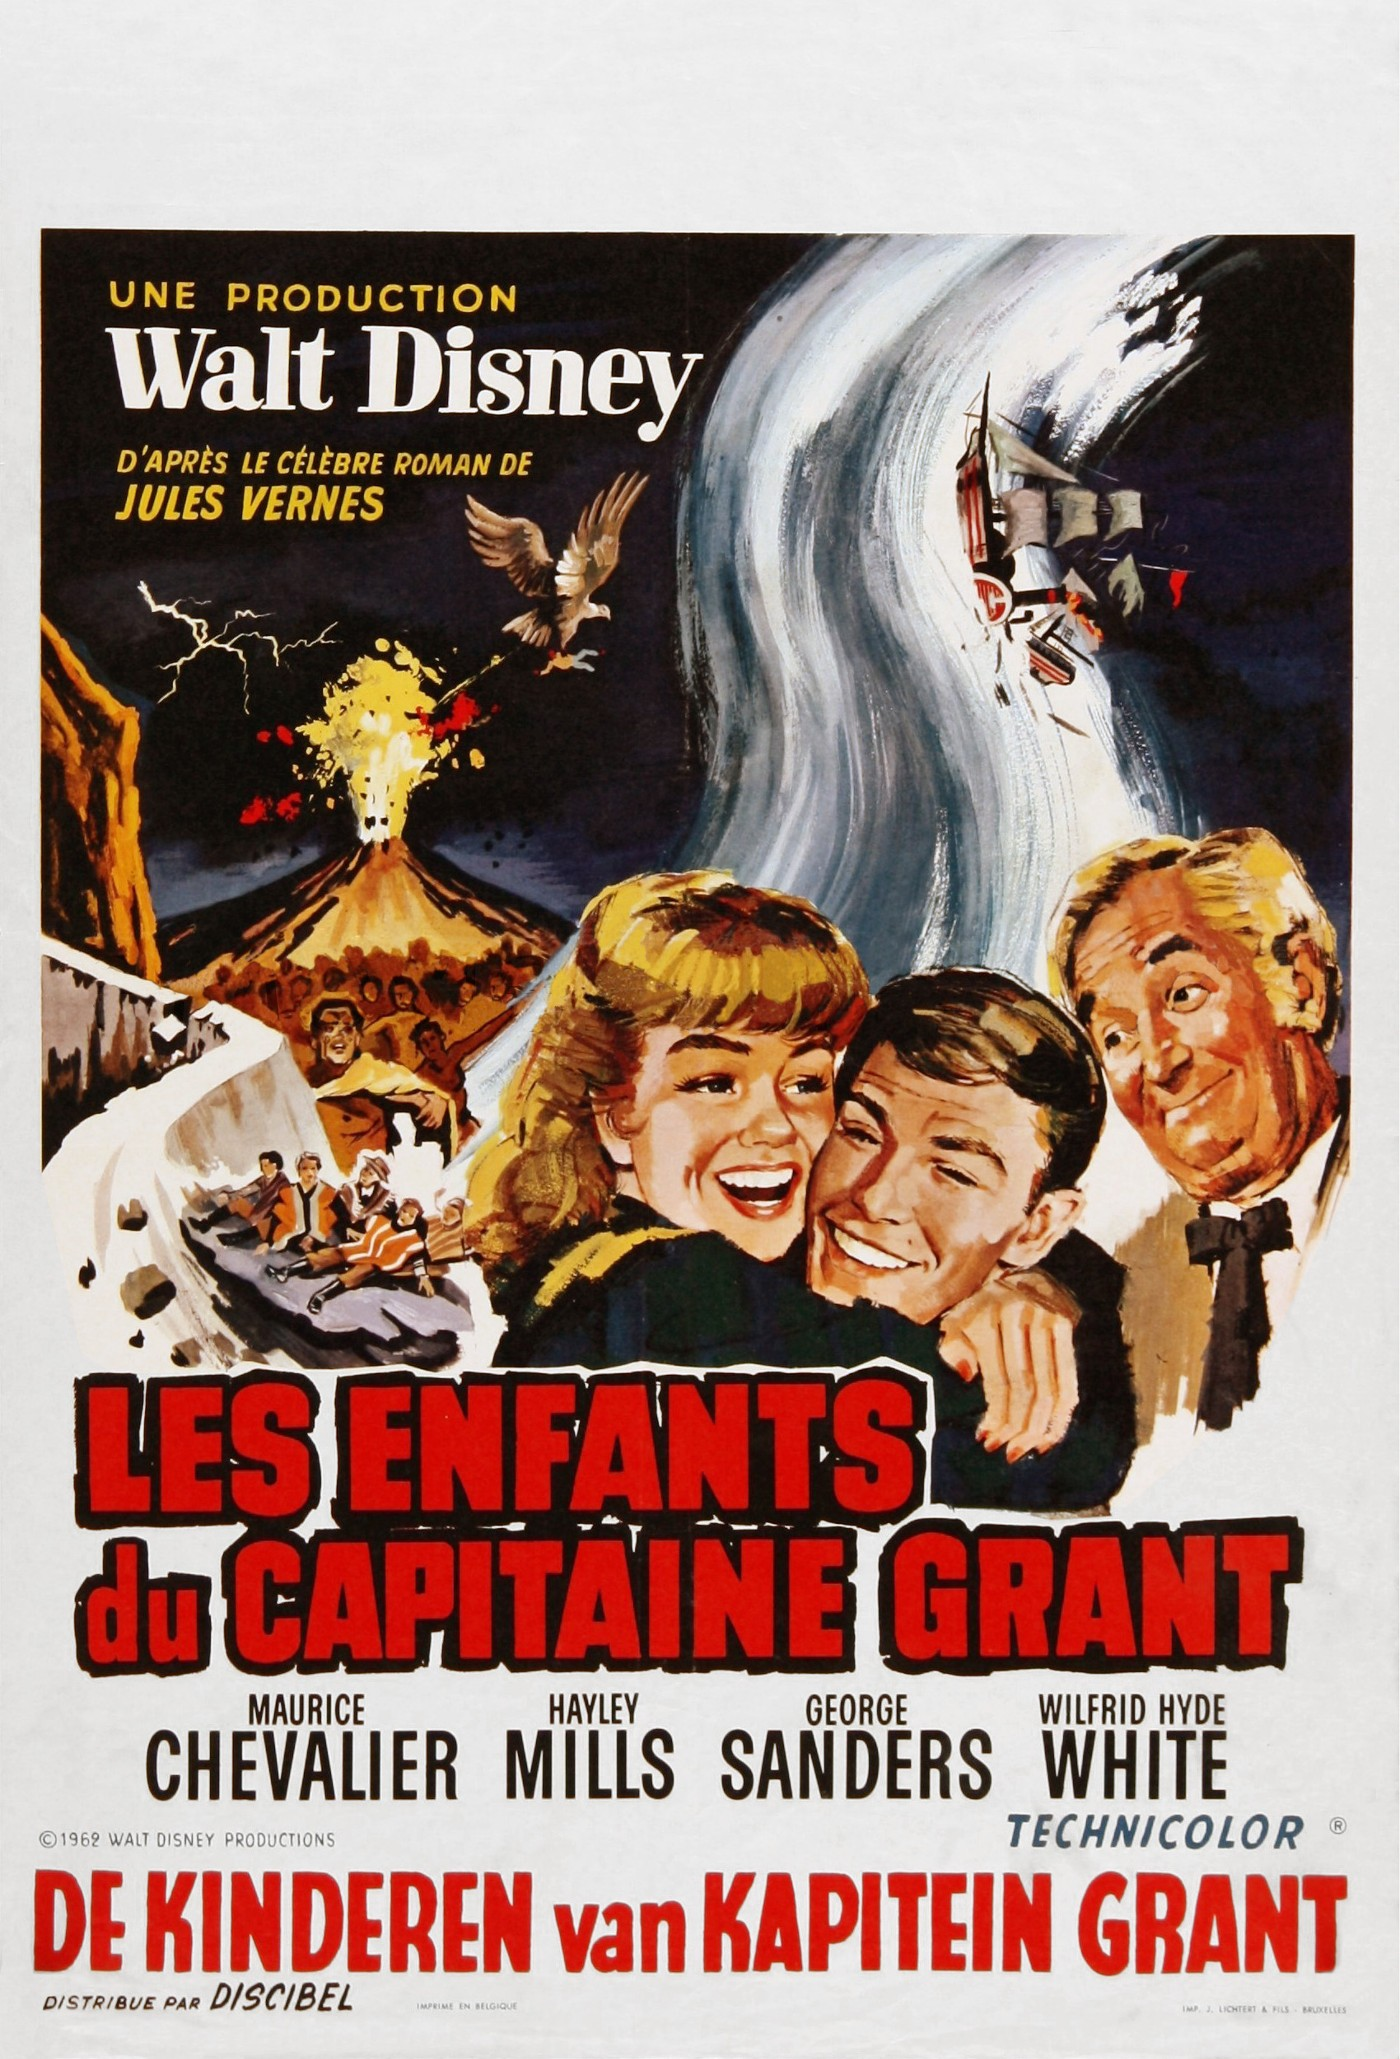 affiches-enfants-capitaine-grant-11.jpg